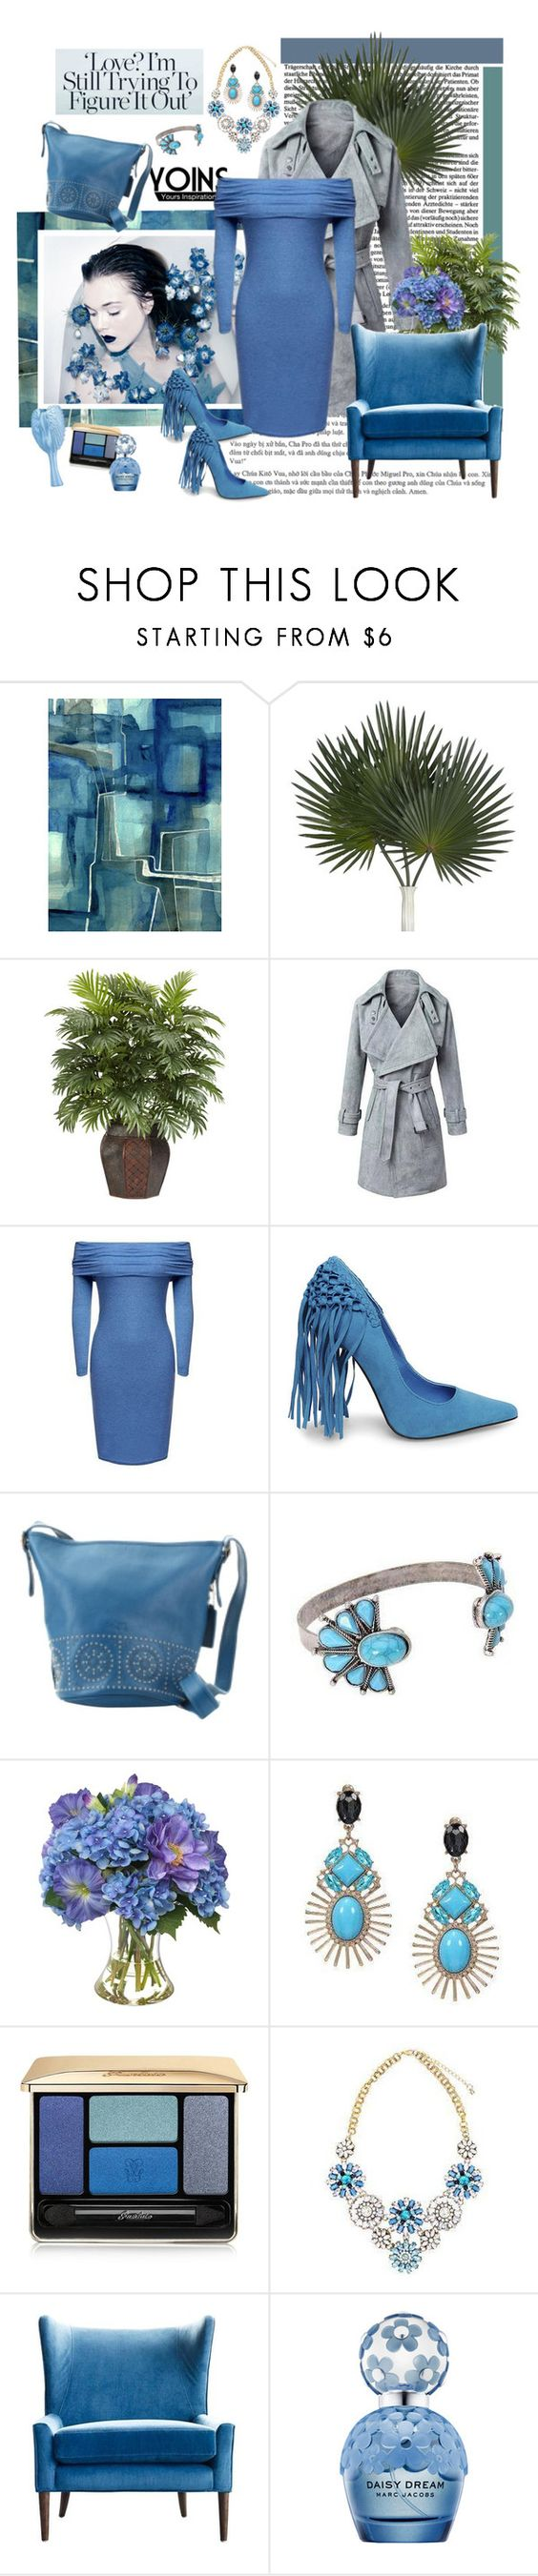 """Yoins - Of Shoulder Dress"" by carola-corana ❤ liked on Polyvore featuring Steve Madden, Coach, Diane James, Guerlain, Marc Jacobs, women's clothing, women, female, woman and misses"